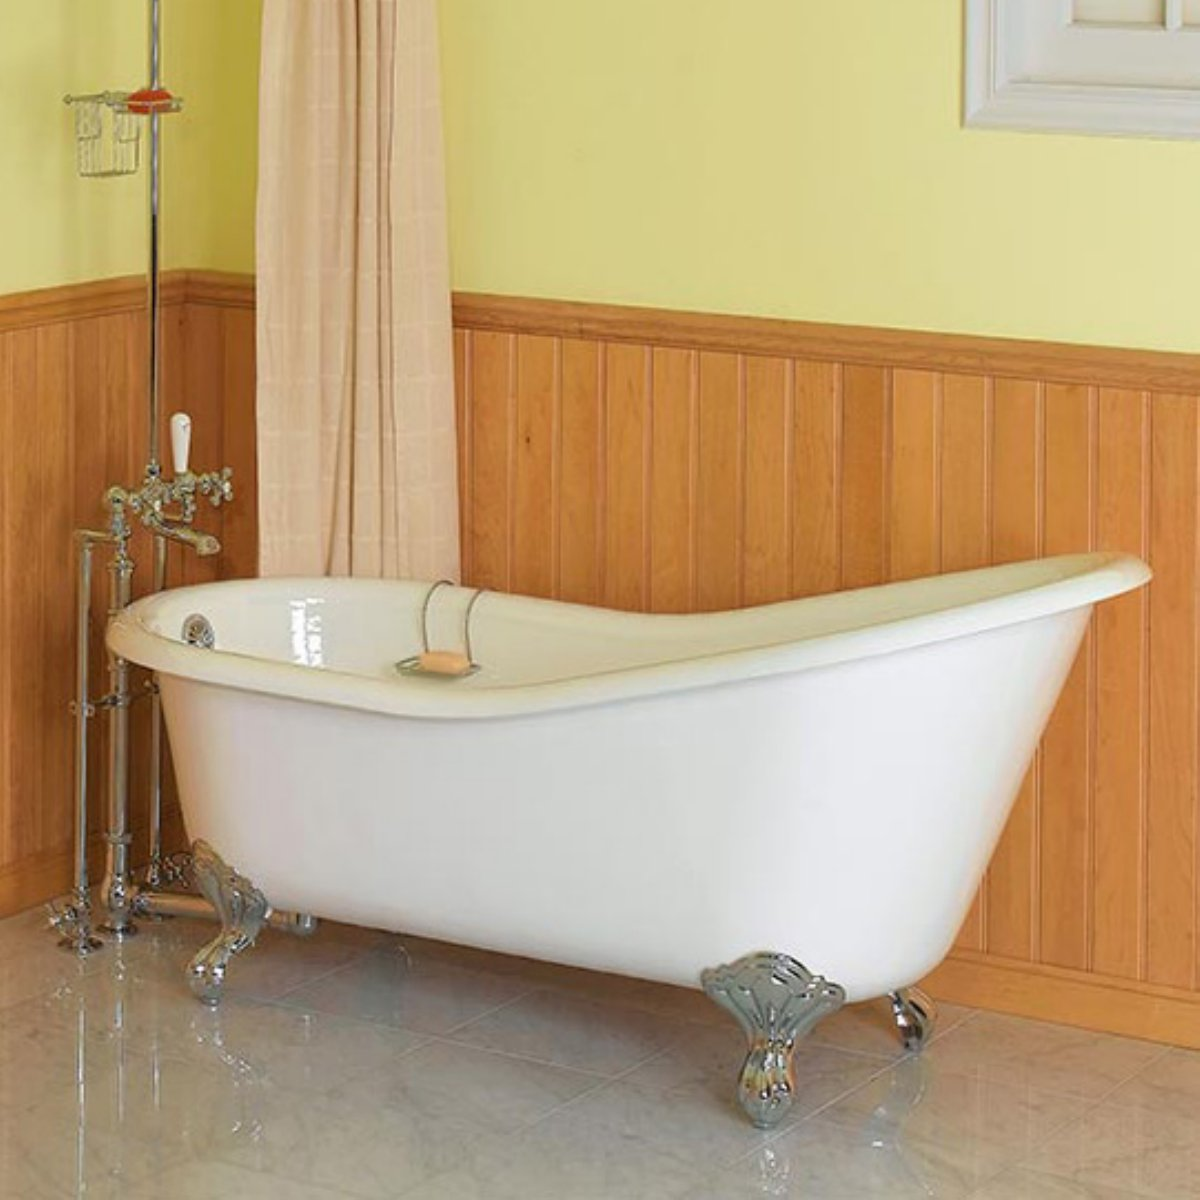 Bathroom Design Ideas With Clawfoot Tub ~ Great pictures and ideas of victorian bathroom floor